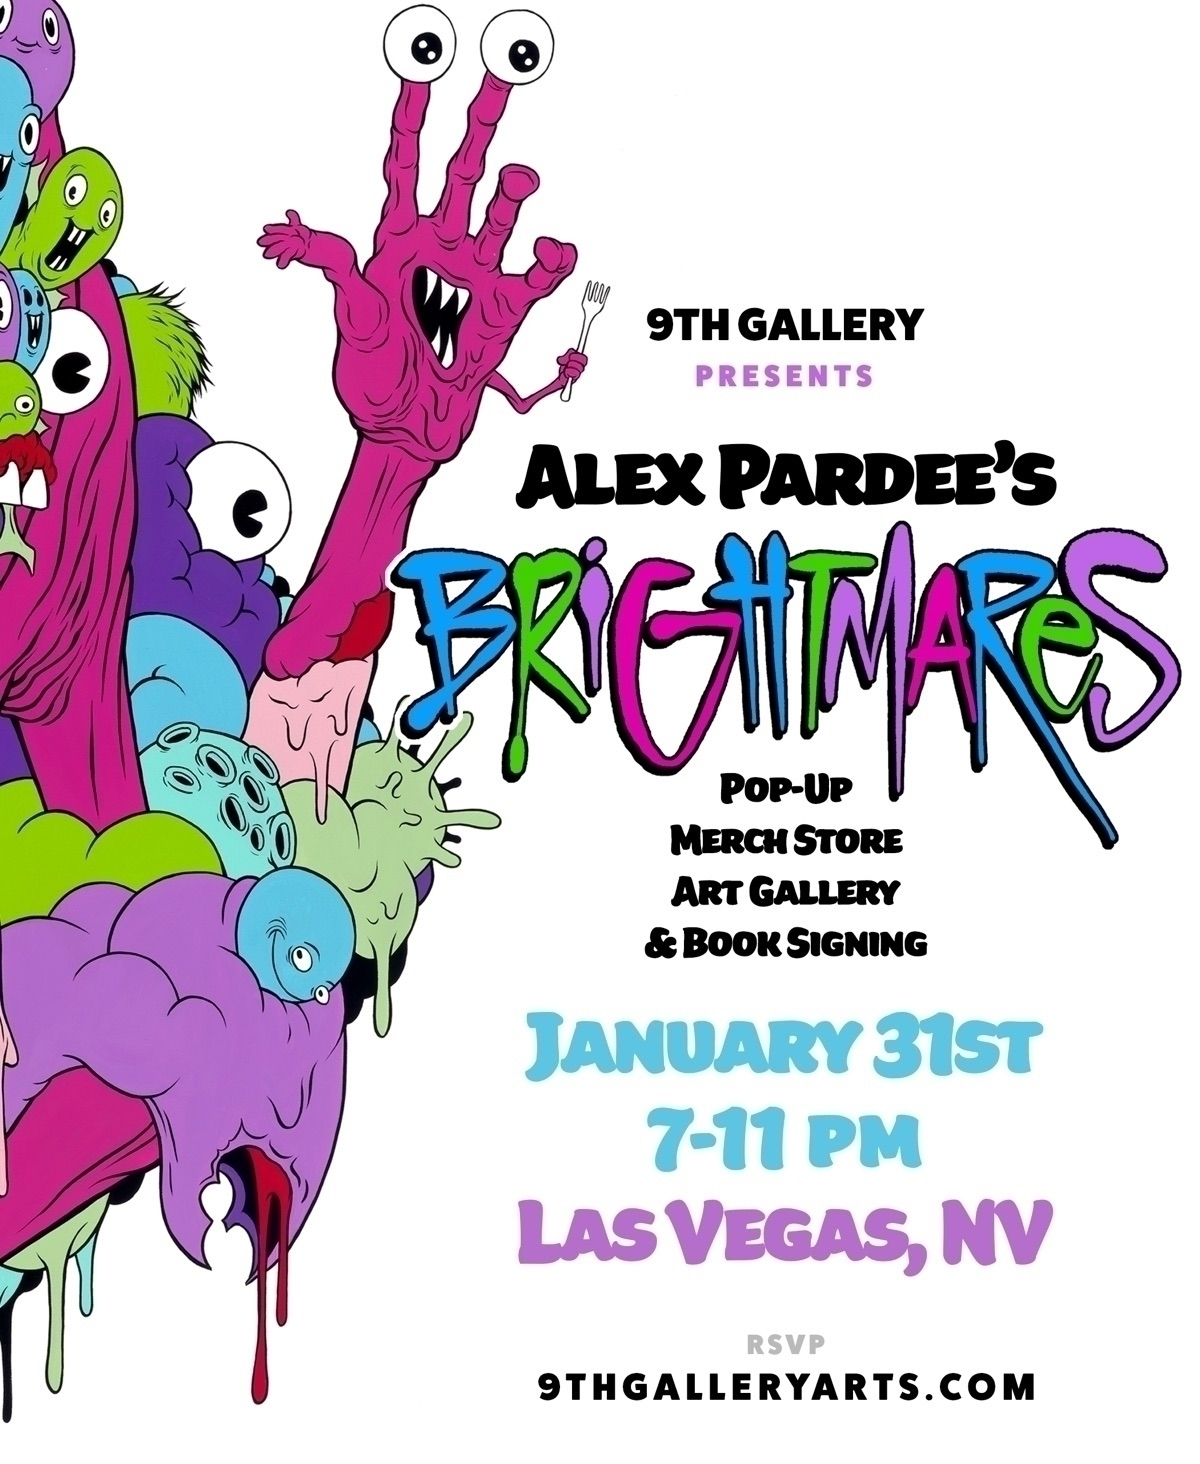 ALEX PARDEE Friday January 31st - 9thgallery | ello